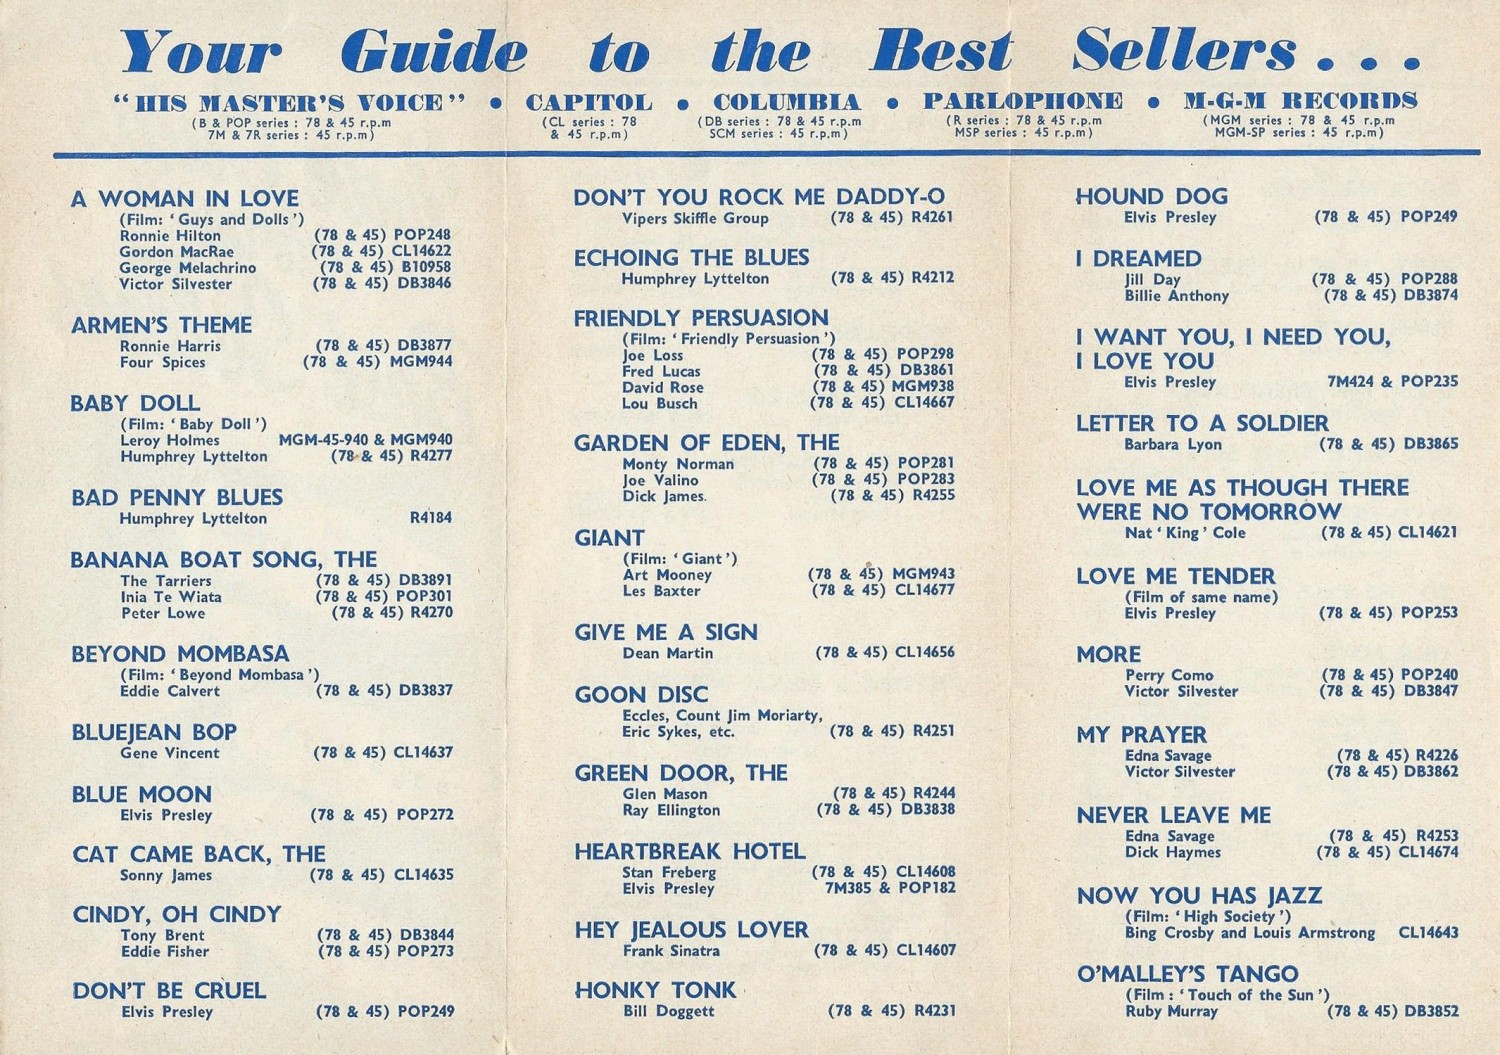 HMV Your Guide To Best Sellers 1957-01 (Alan White) 02